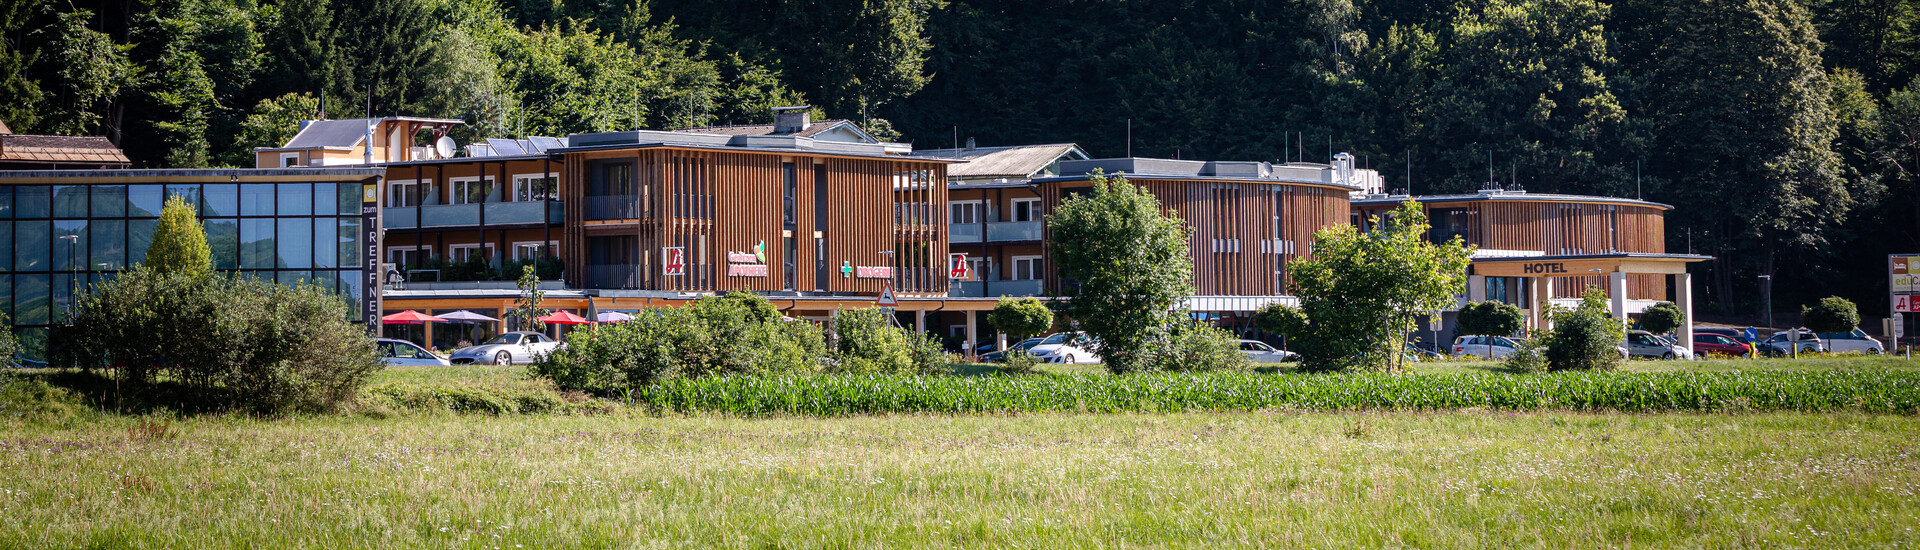 4-Sterne Hotel am Ossiacher See